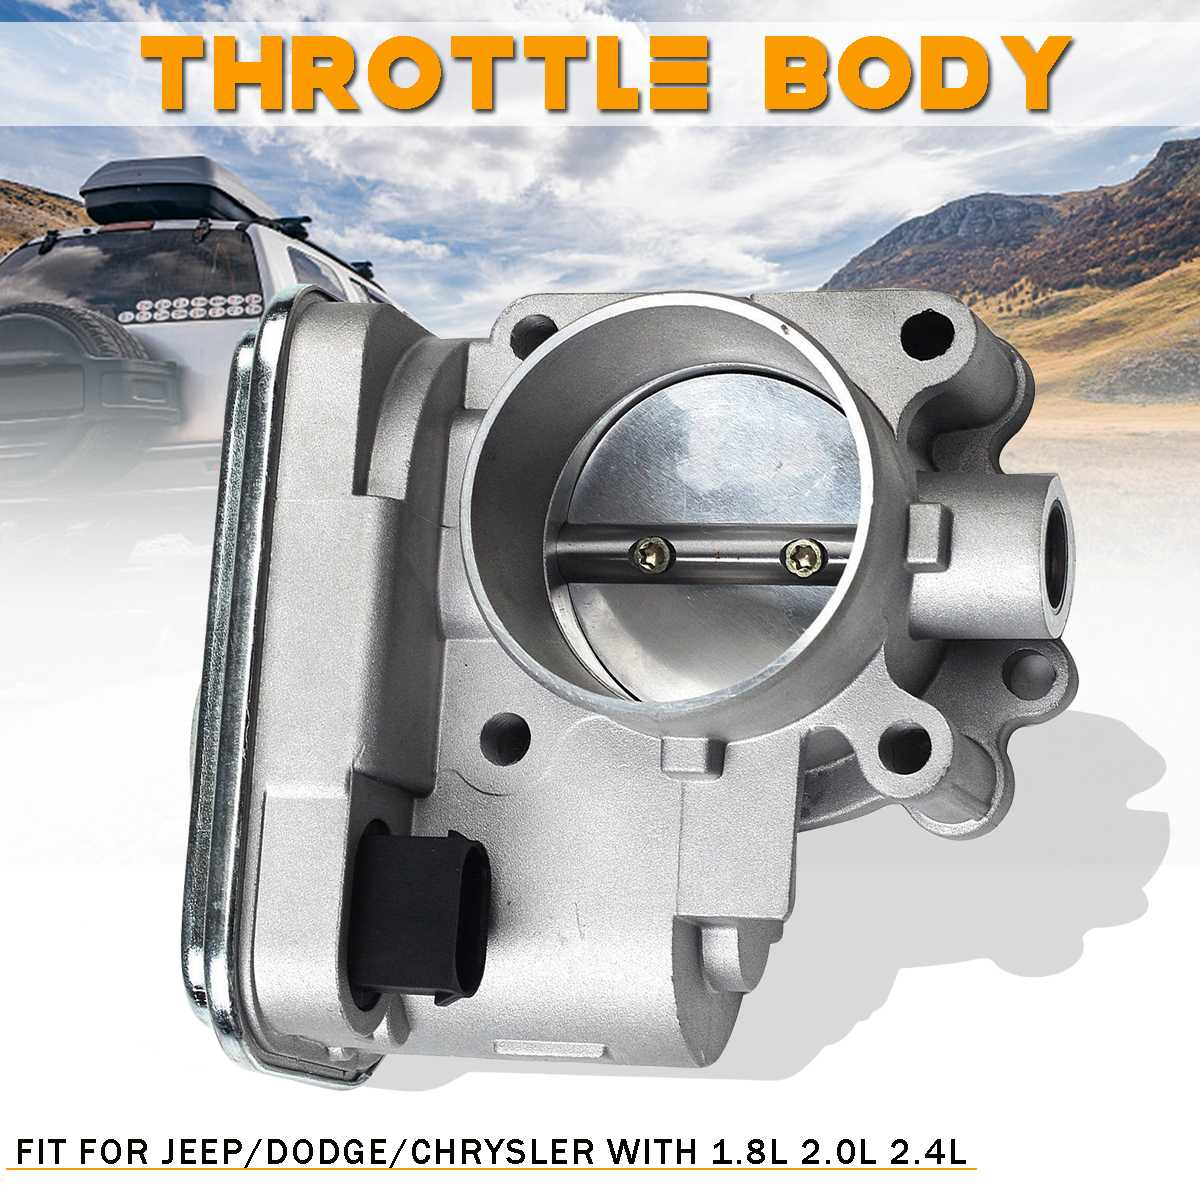 Complete Throttle Body For Jeep/Chrysler/Dodge/Compass/Caliber 4884551AA 04891735AC Auto Replacement Parts 1.8L 2.0L 2.4L Complete Throttle Body For Jeep/Chrysler/Dodge/Compass/Caliber 4884551AA 04891735AC Auto Replacement Parts 1.8L 2.0L 2.4L